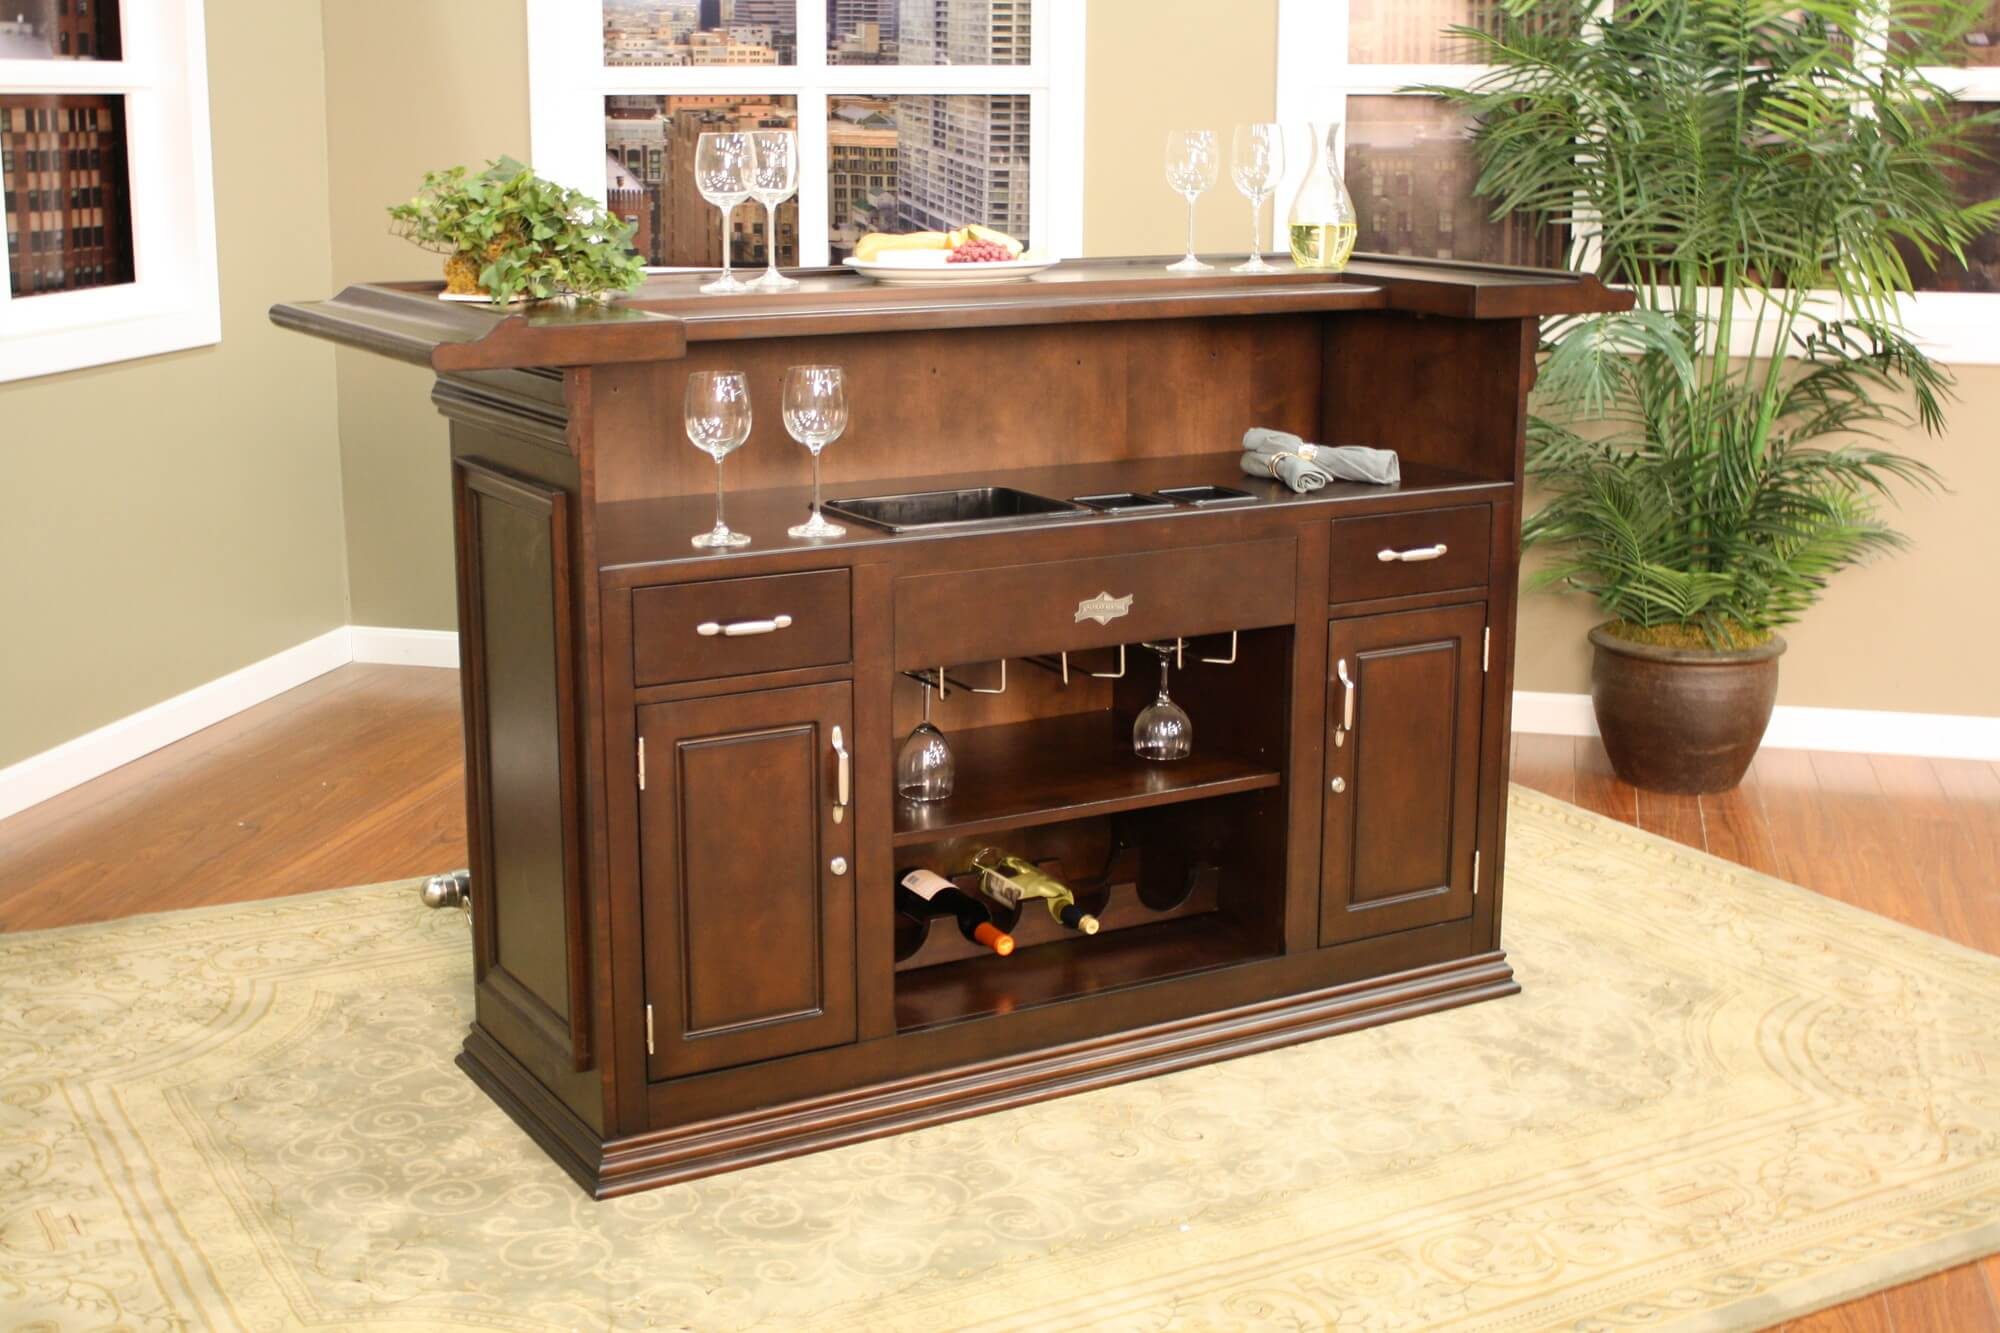 Superb Back End View   For A Smaller Design, This Home Bar Offers Some Great  Features